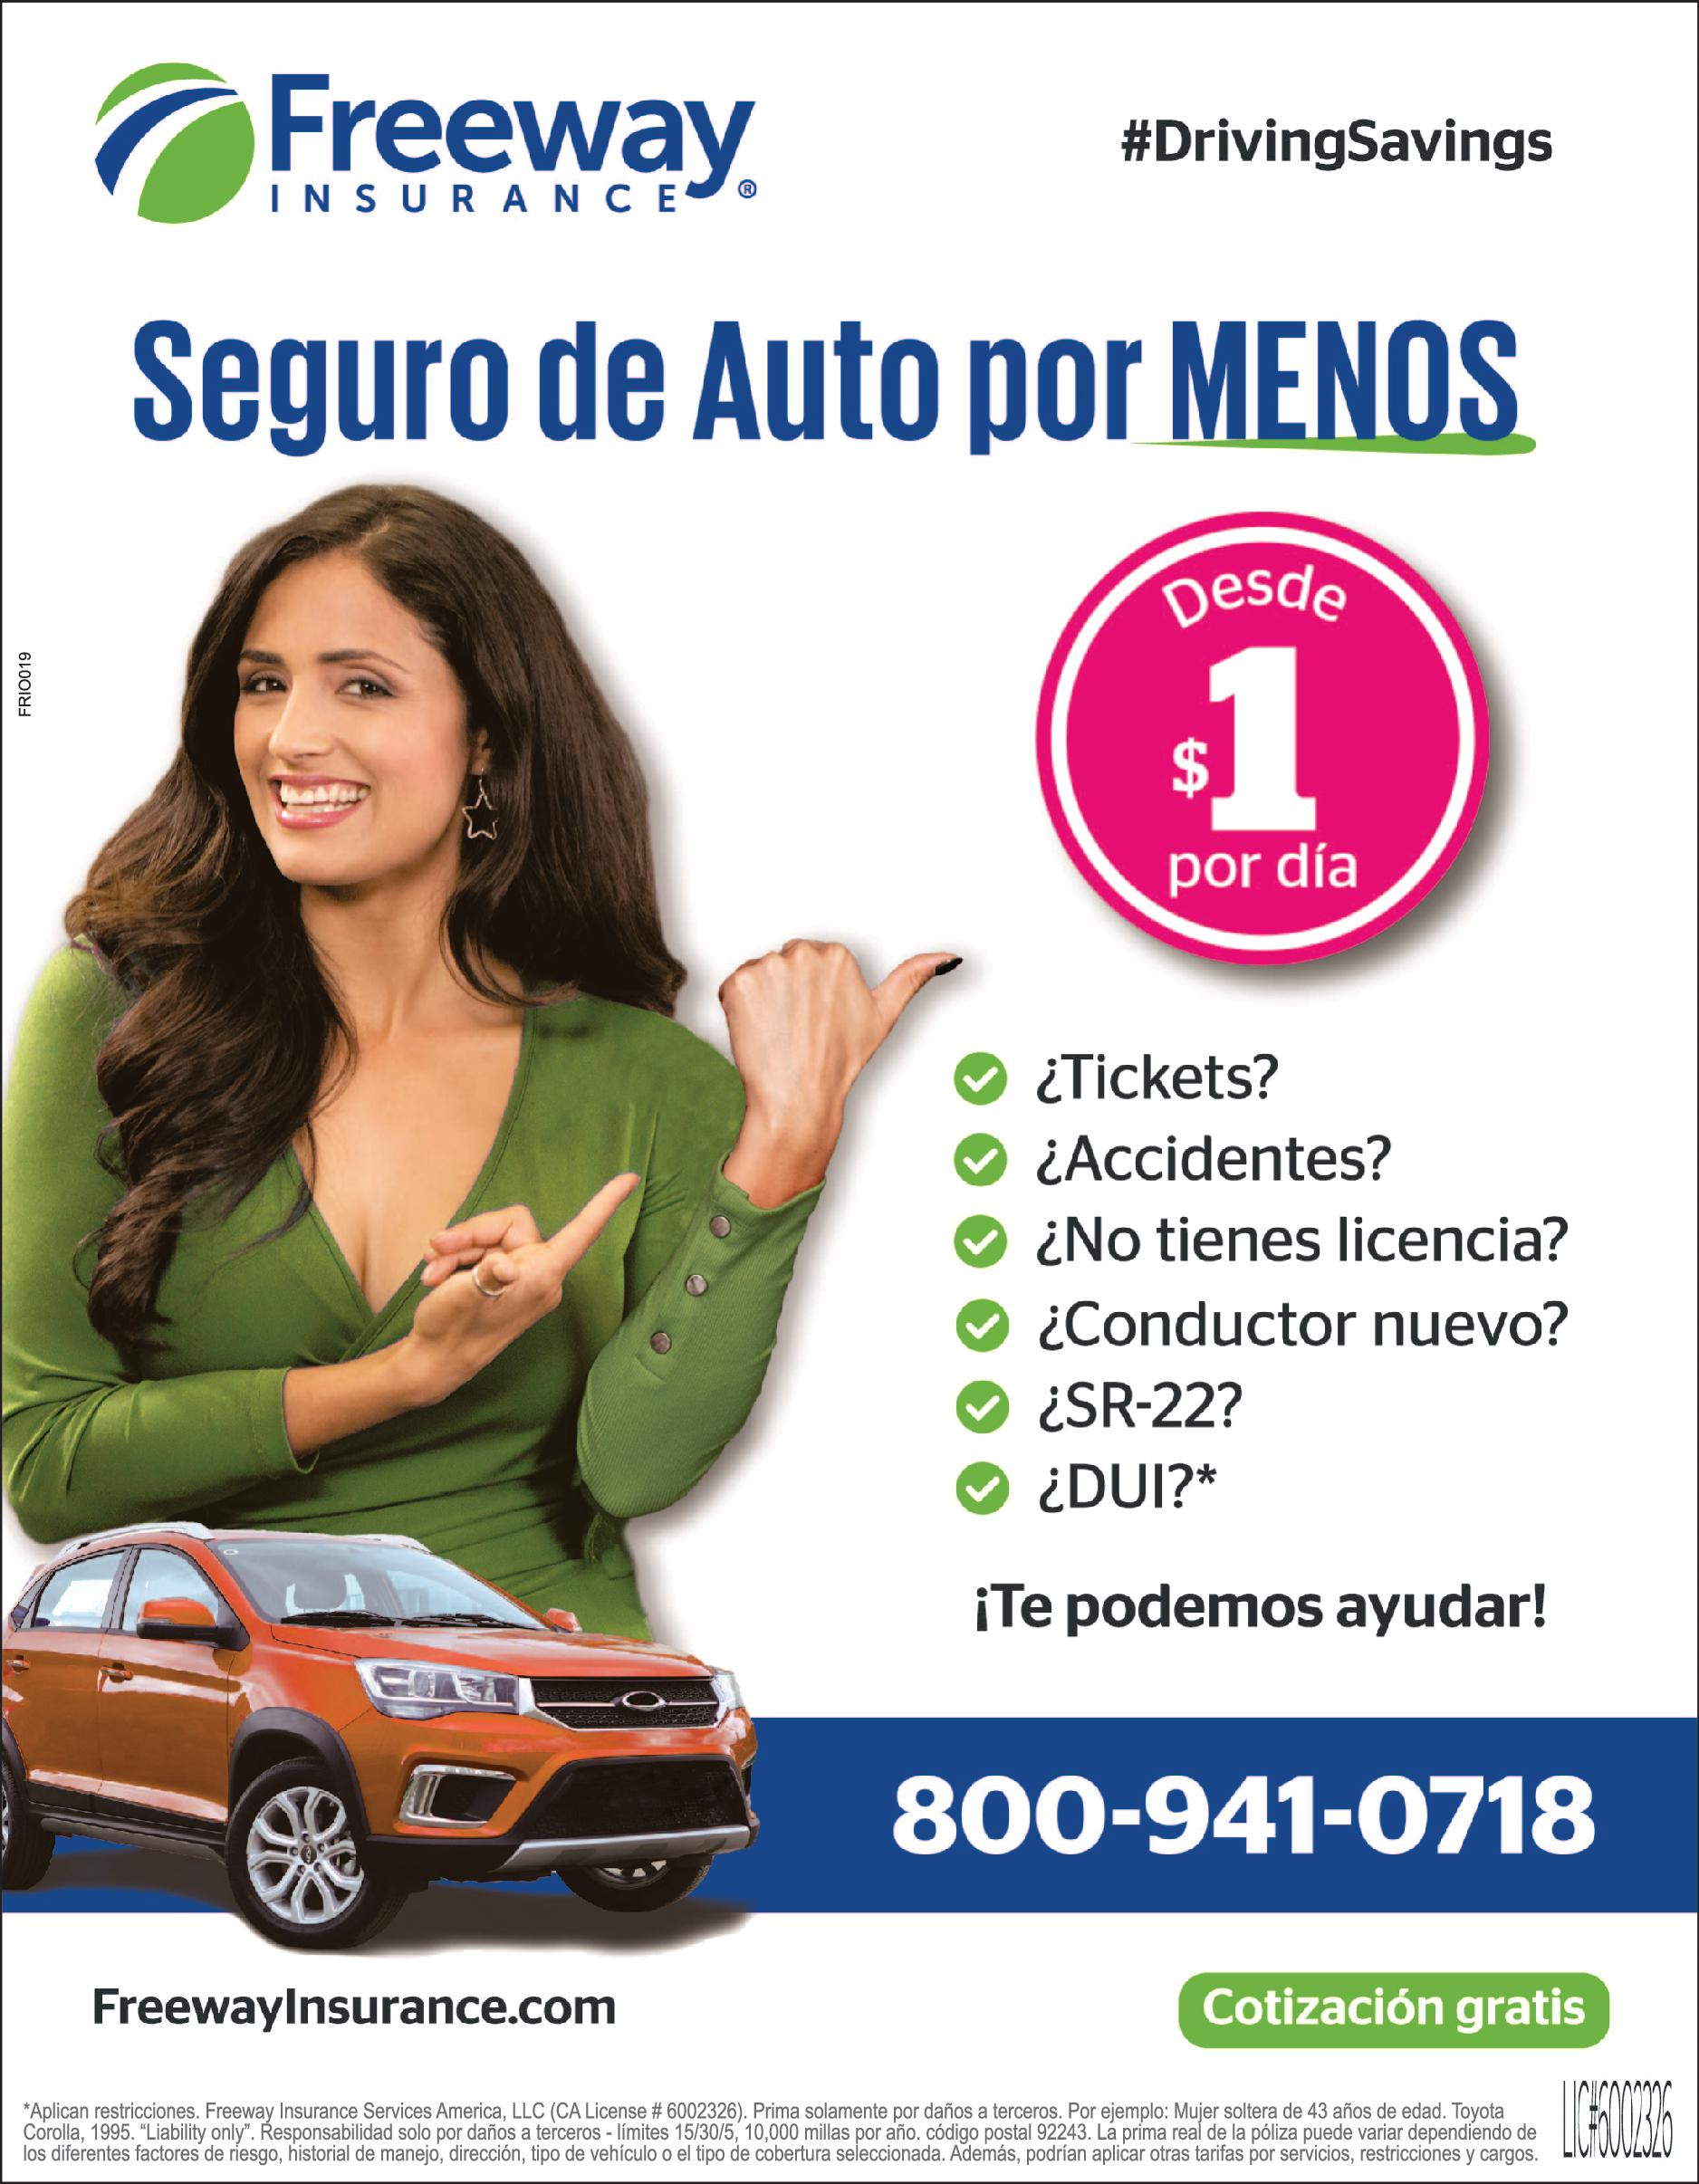 FREE WAY INSURANCE  INLAND EMPIRE